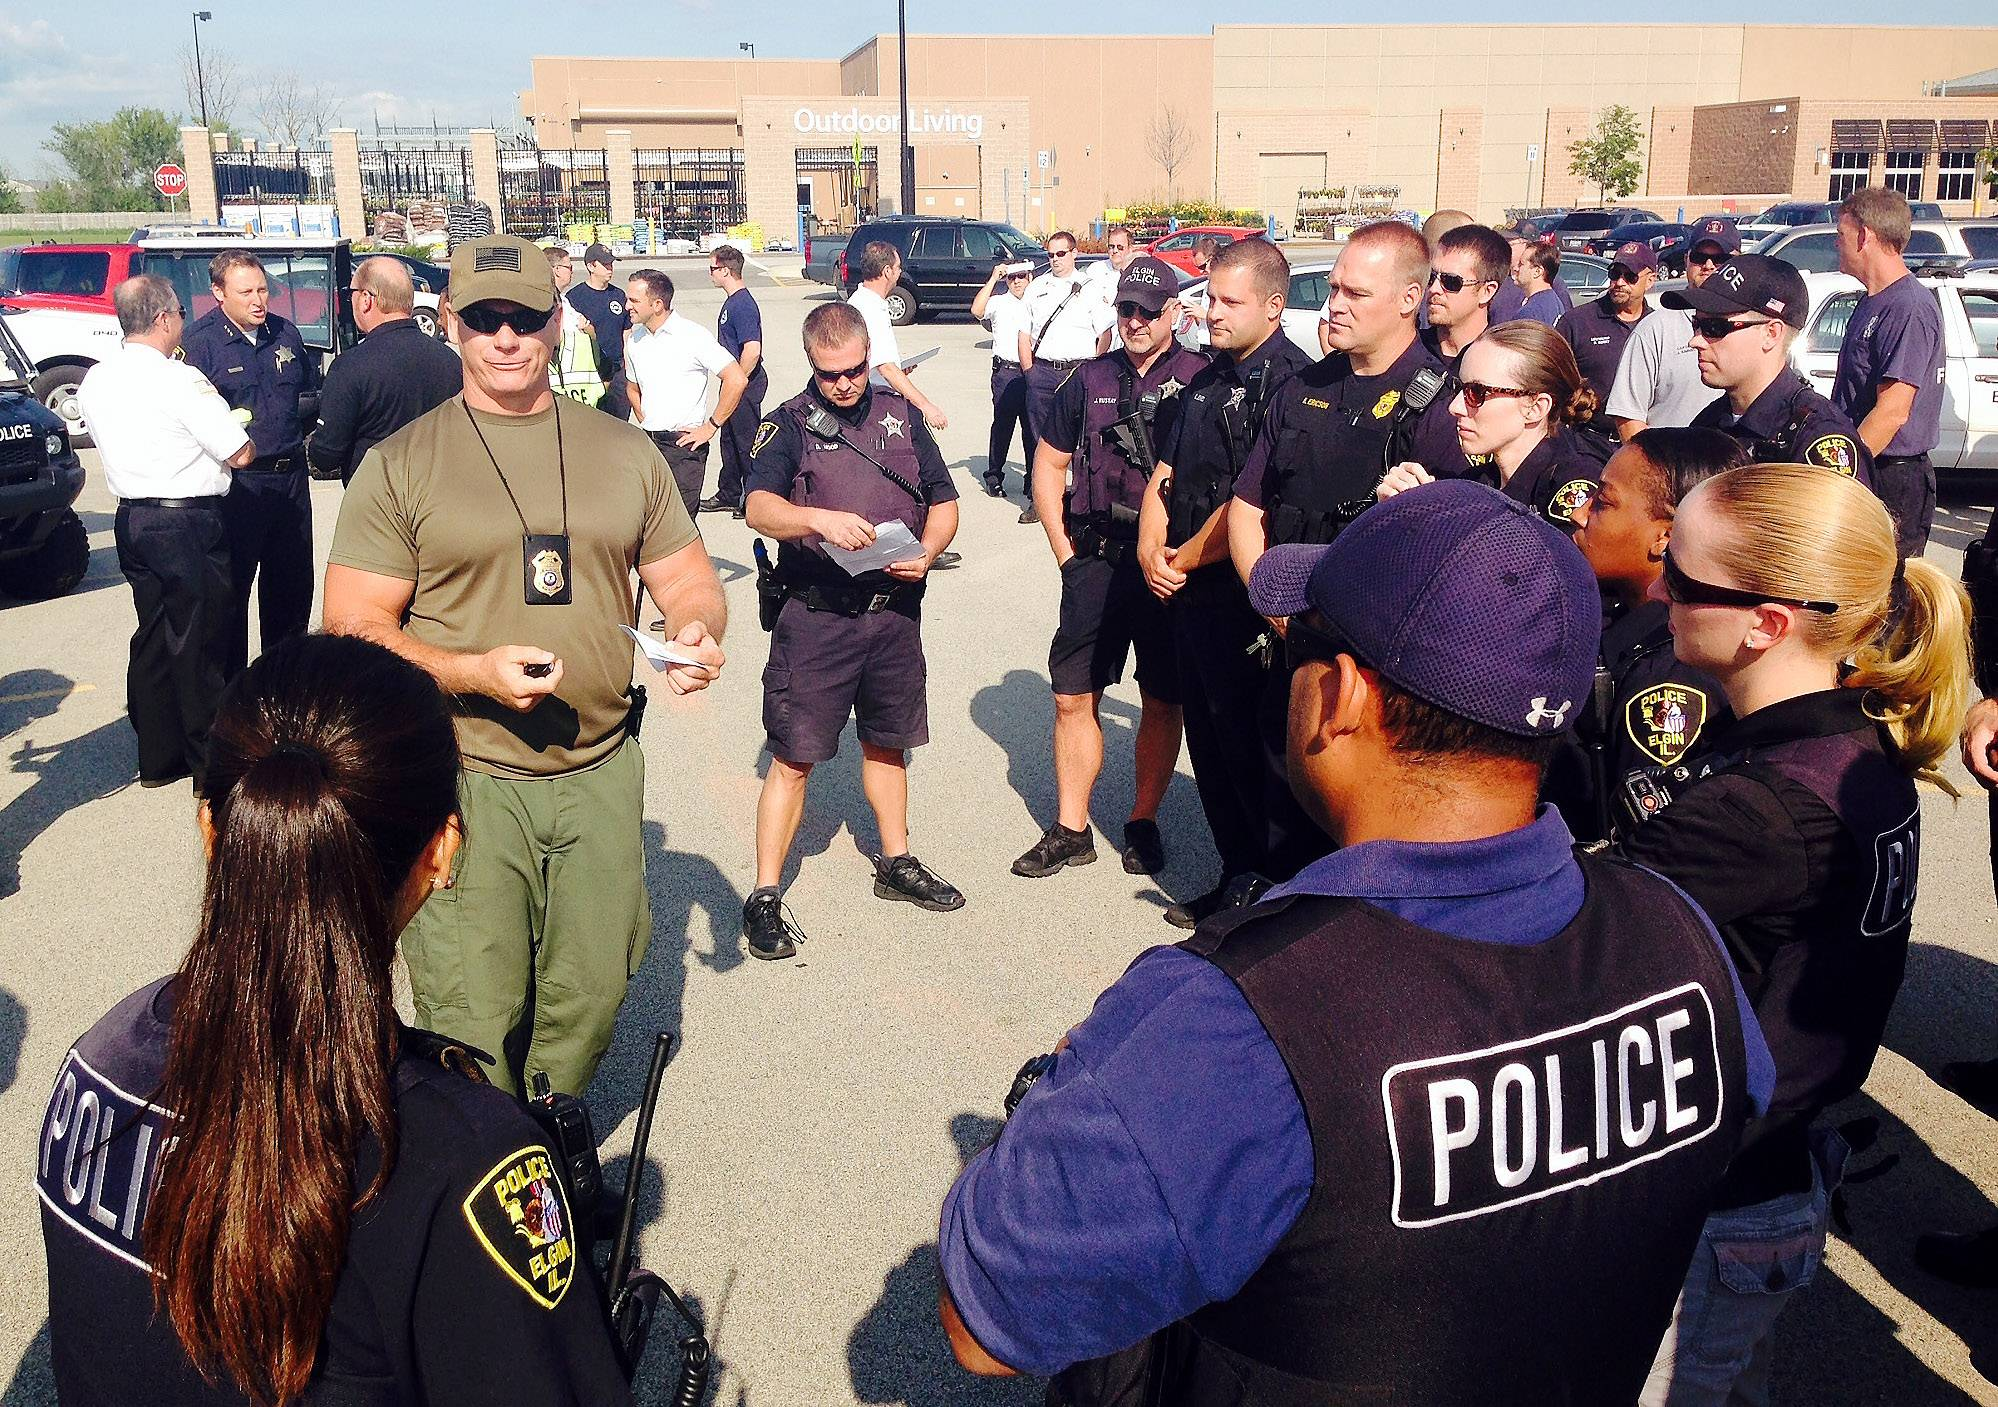 Elgin Police Lt. Colin Fleury briefs emergency responders Thursday in the parking lot of Wal-Mart on Randall and Bowes roads before a training exercise at nearby Otter Creek Elementary School.